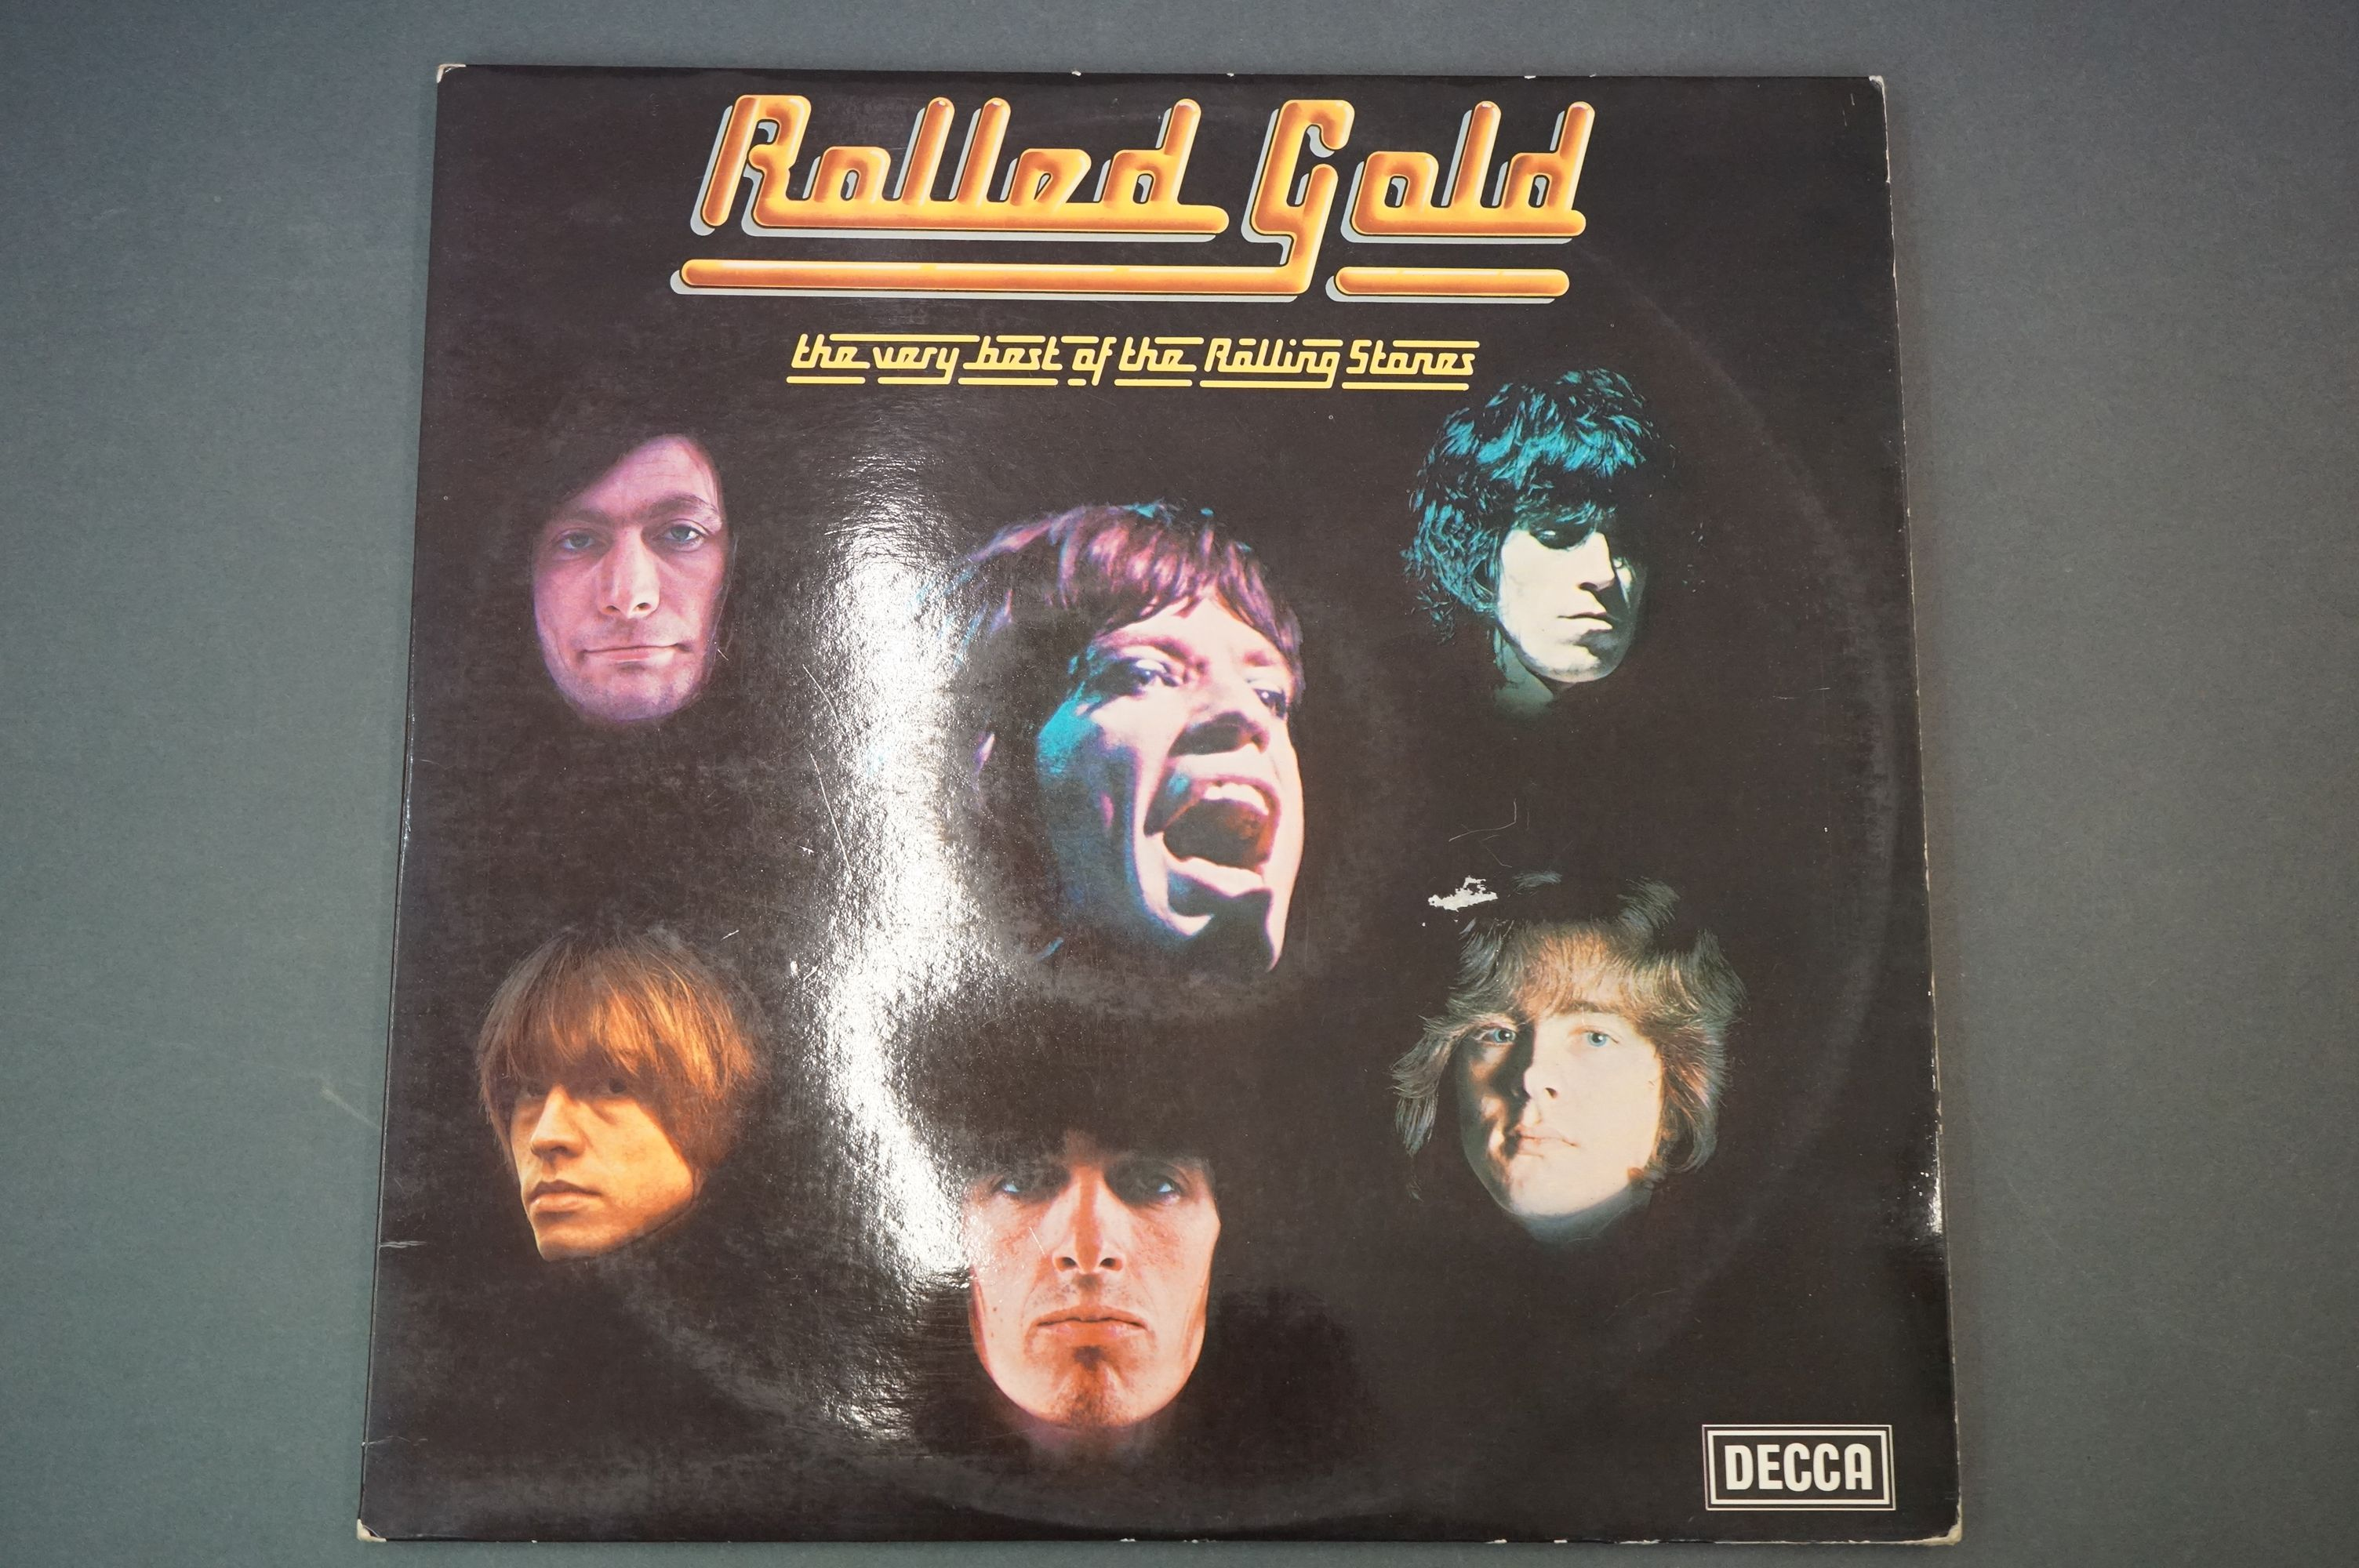 Vinyl - Rolling Stones 3 LP's to include Rolled Gold and Self Titled (both Dutch pressings), and - Image 2 of 10